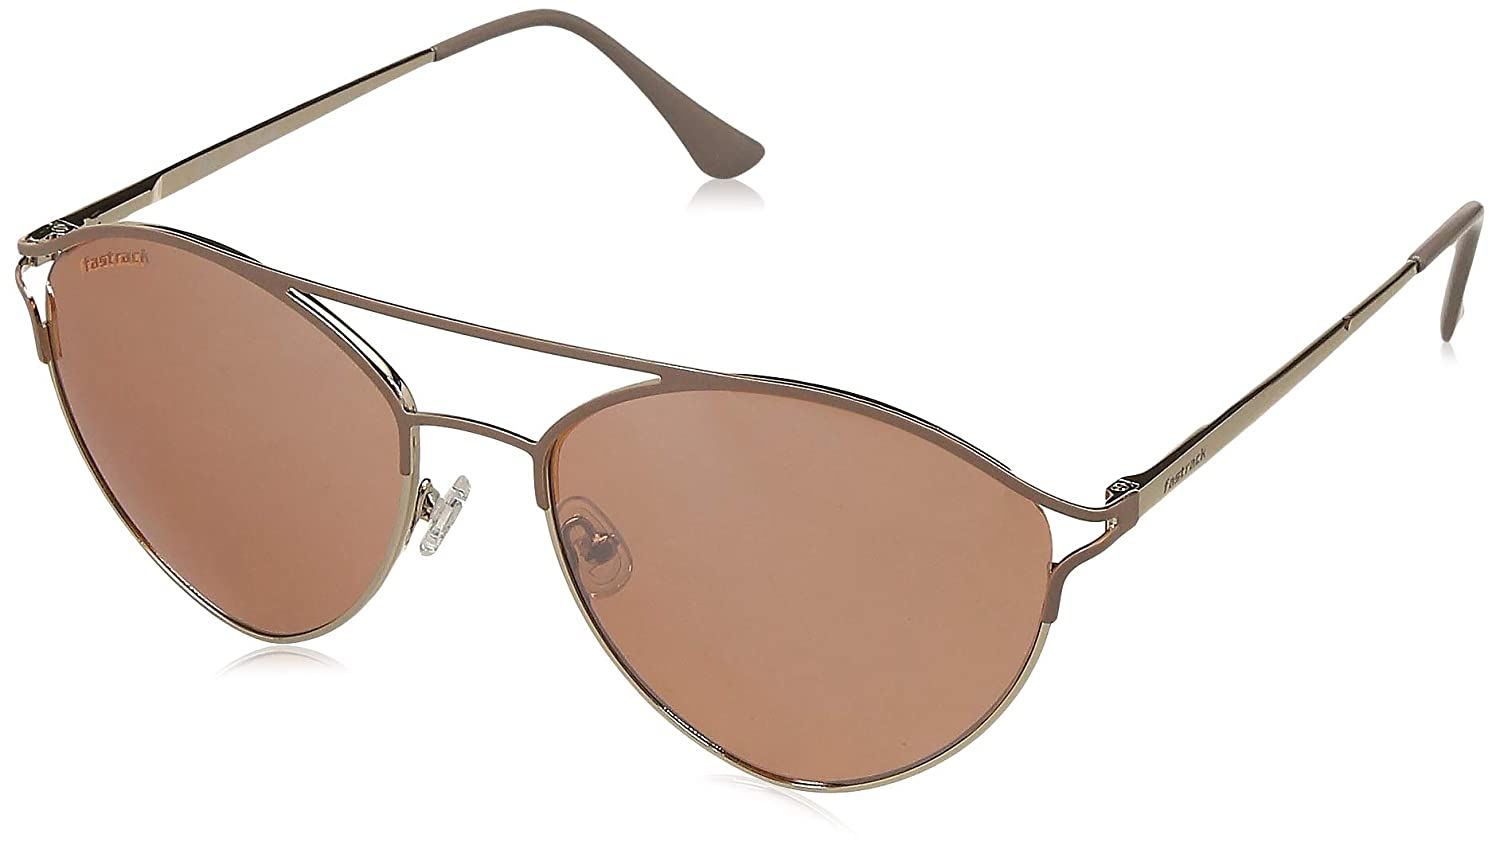 fafe403ba60 Fastrack UV Protected Aviator Women s Sunglasses - (NBM185YL1F